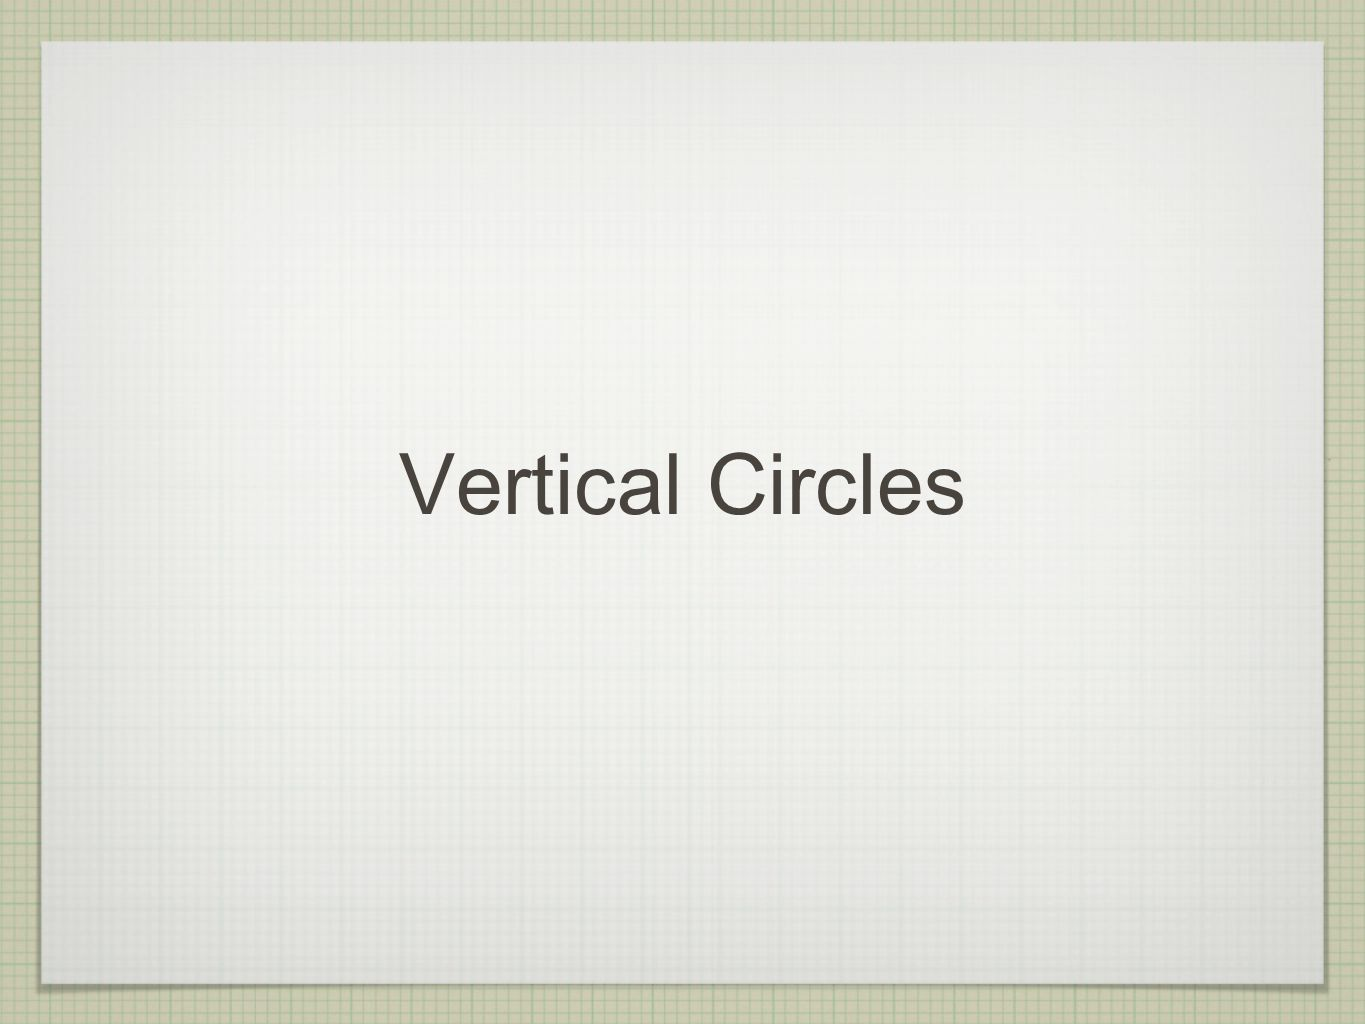 Vertical Circles